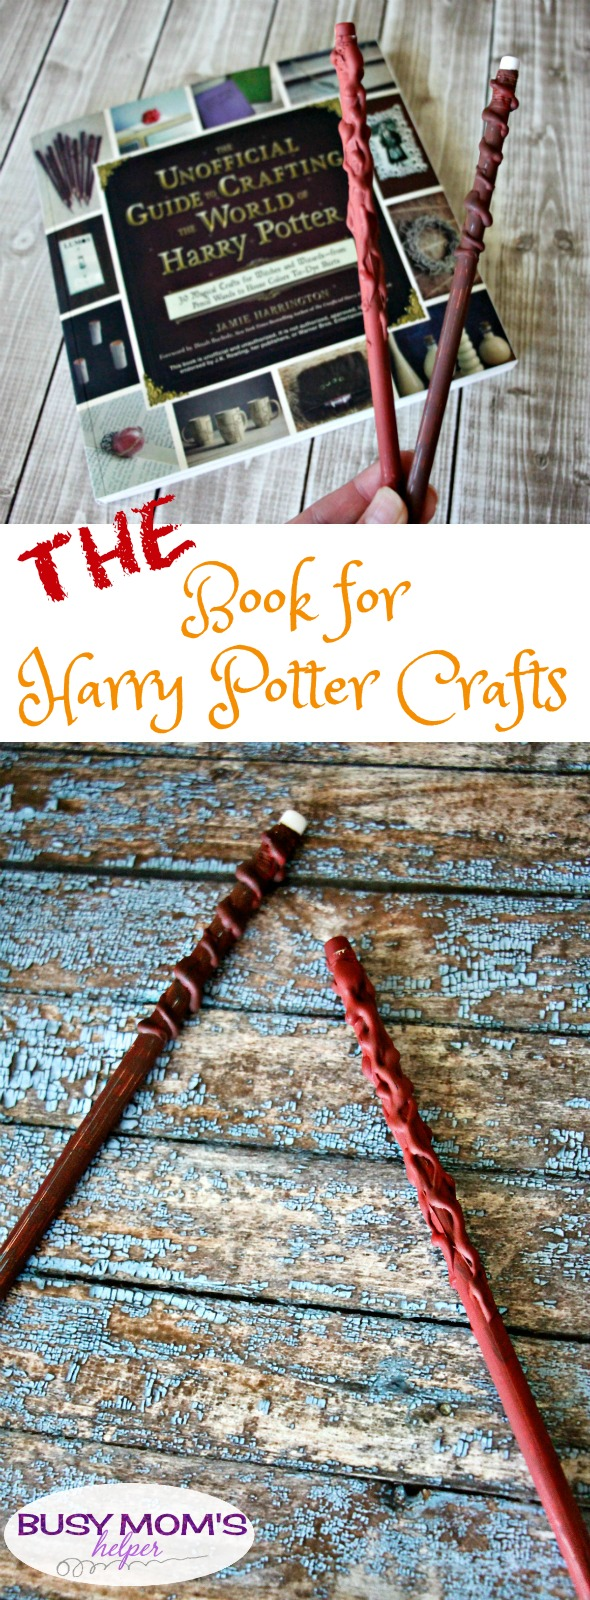 THE Book for Harry Potter Crafts, the perfect gift for any Harry Potter Fan / by BusyMomsHelper.com #ad